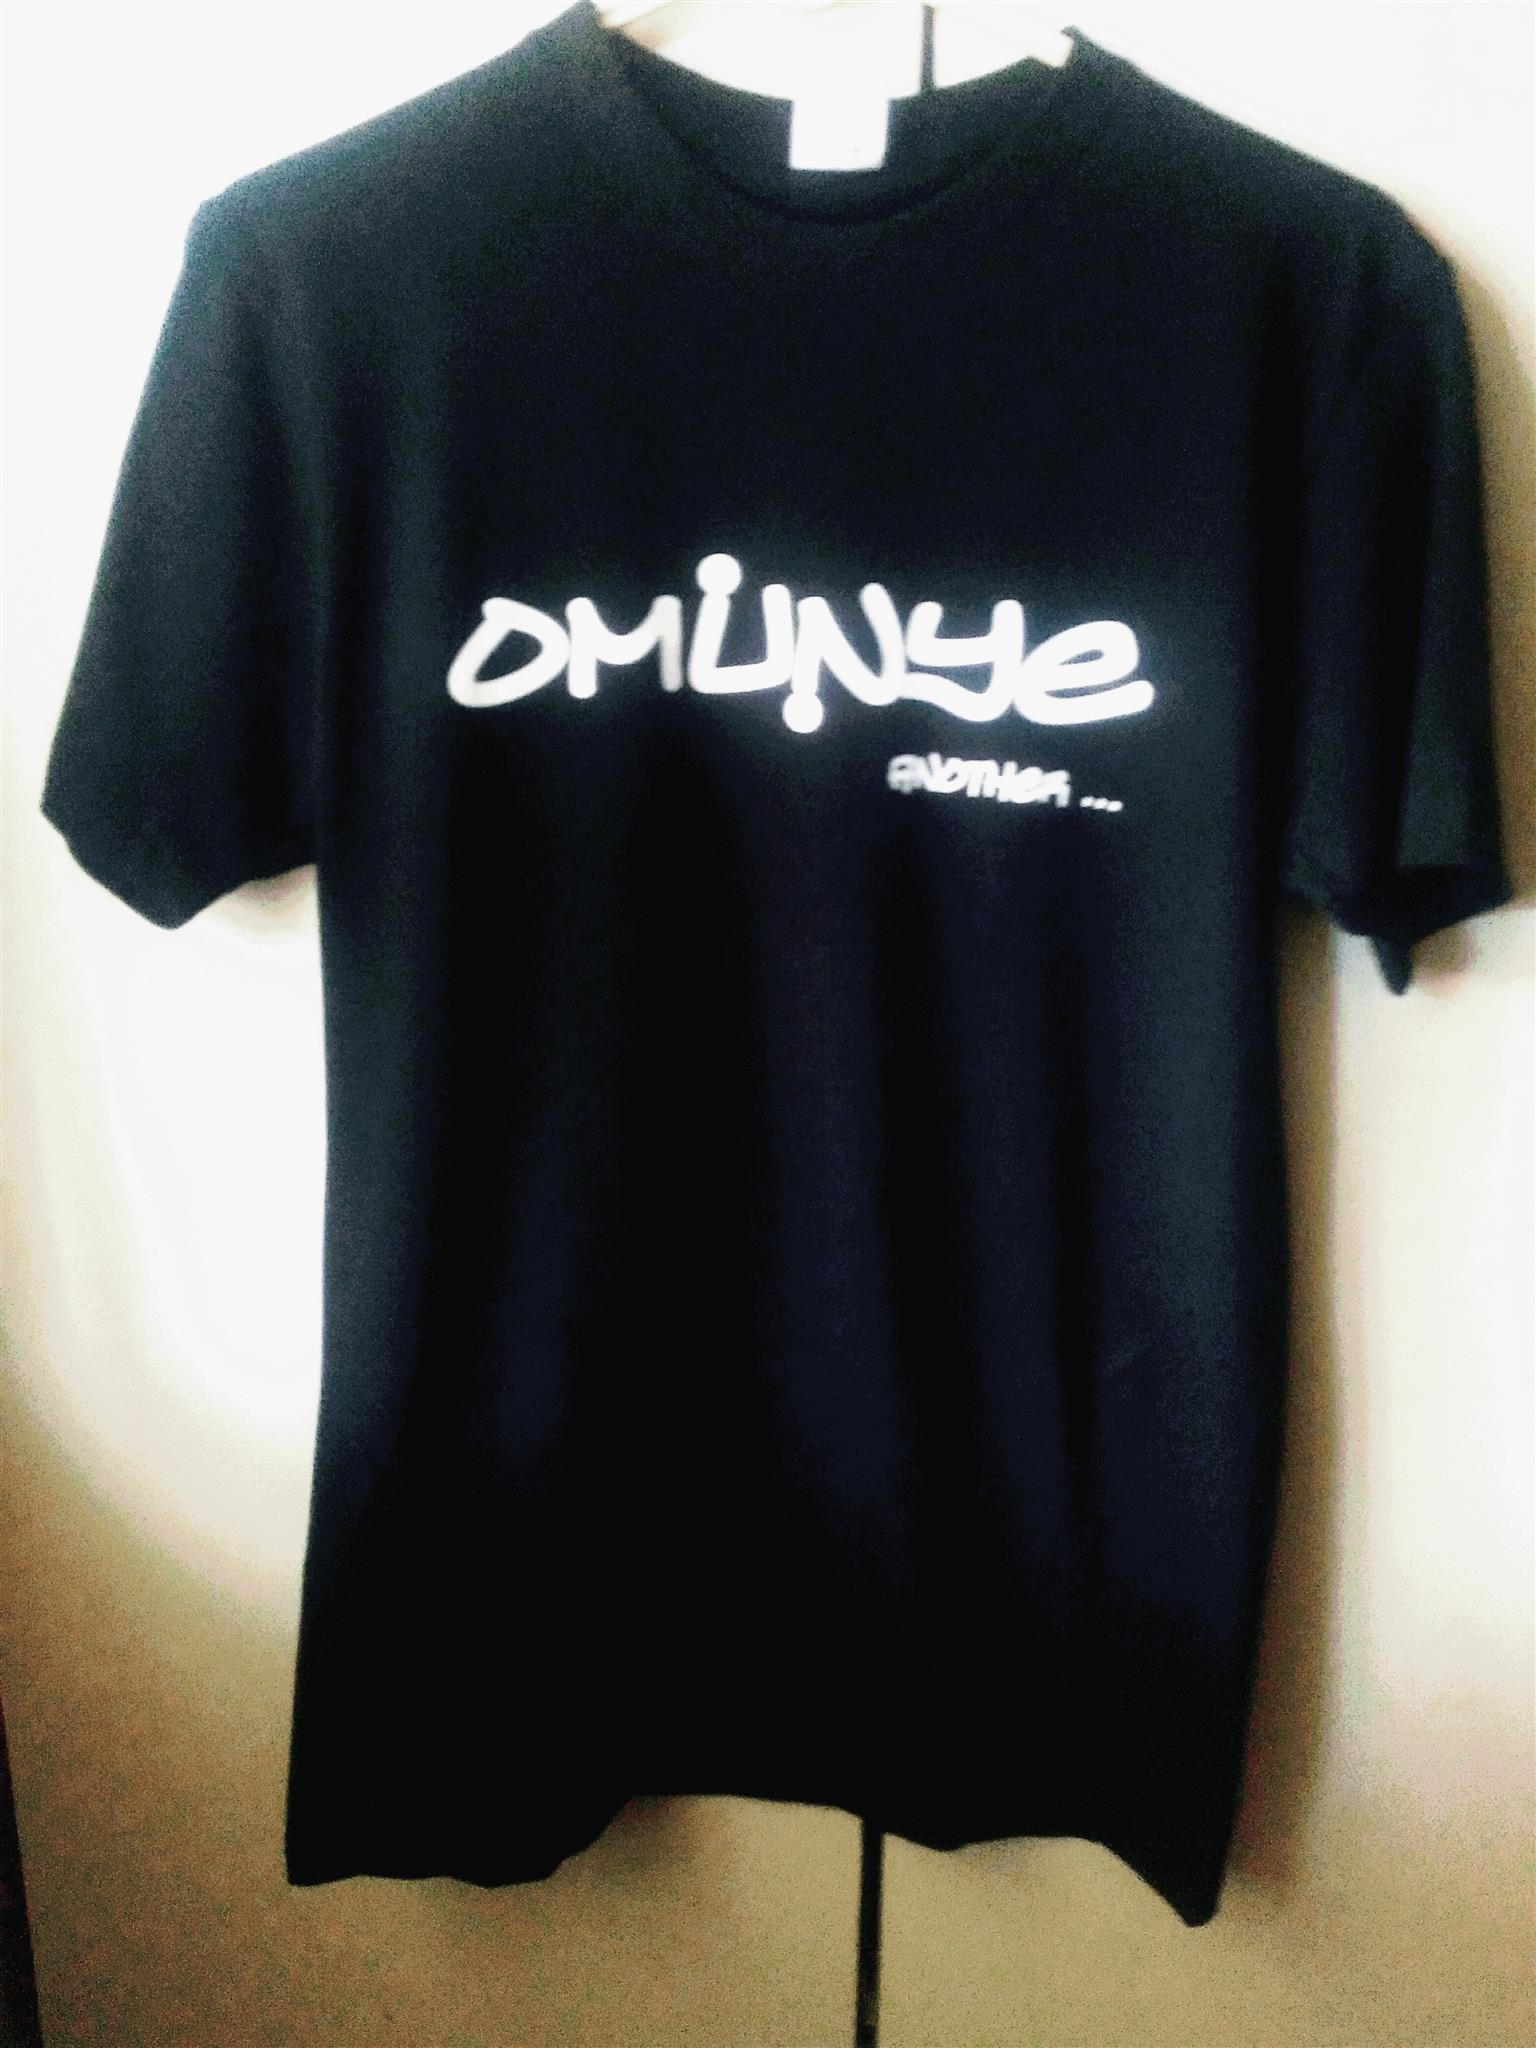 High Quality T shirt Printing and more